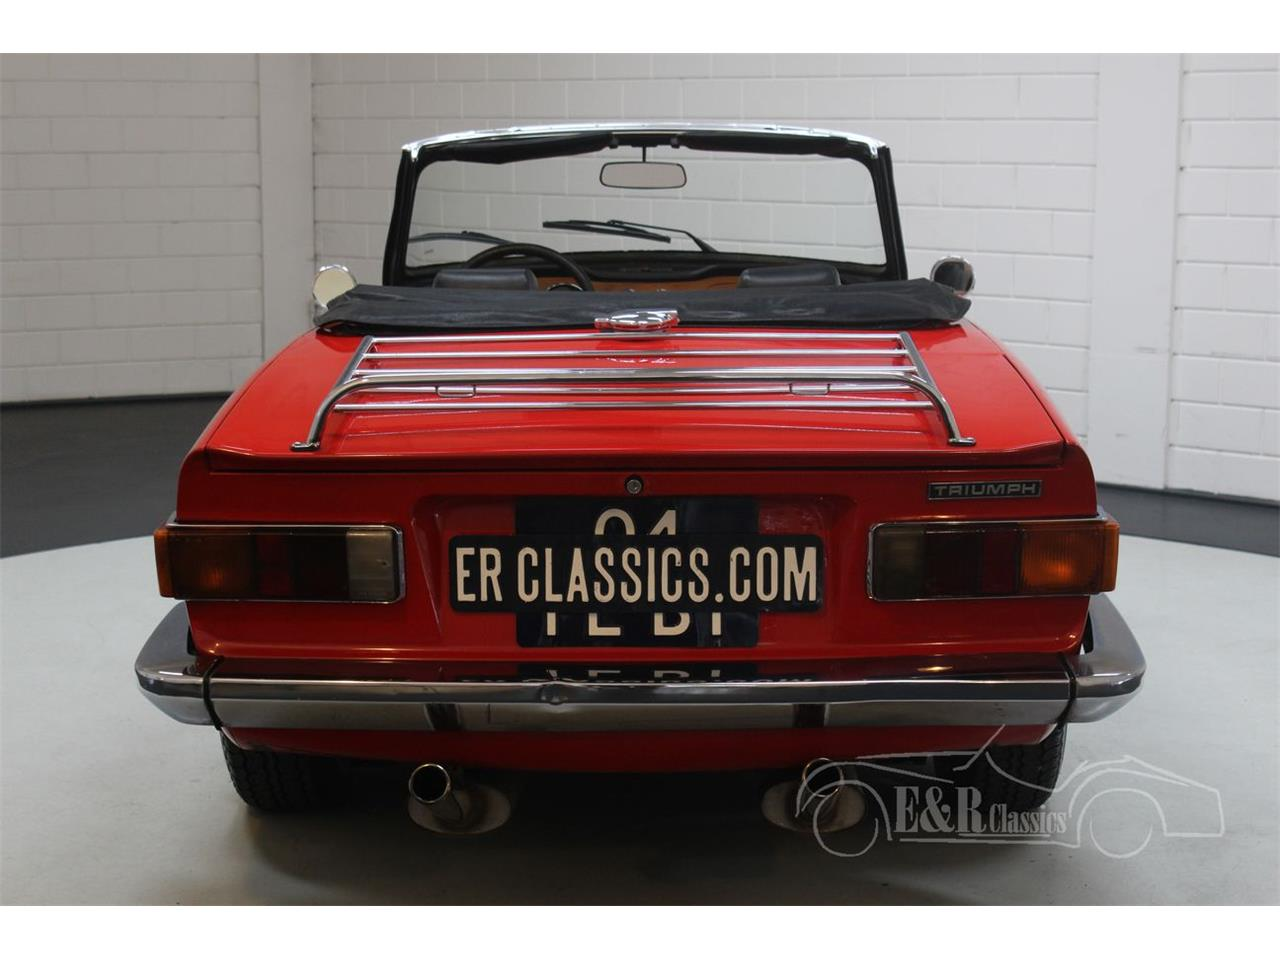 Large Picture of 1973 TR6 located in Noord Brabant - $25,800.00 Offered by E & R Classics - PWMQ